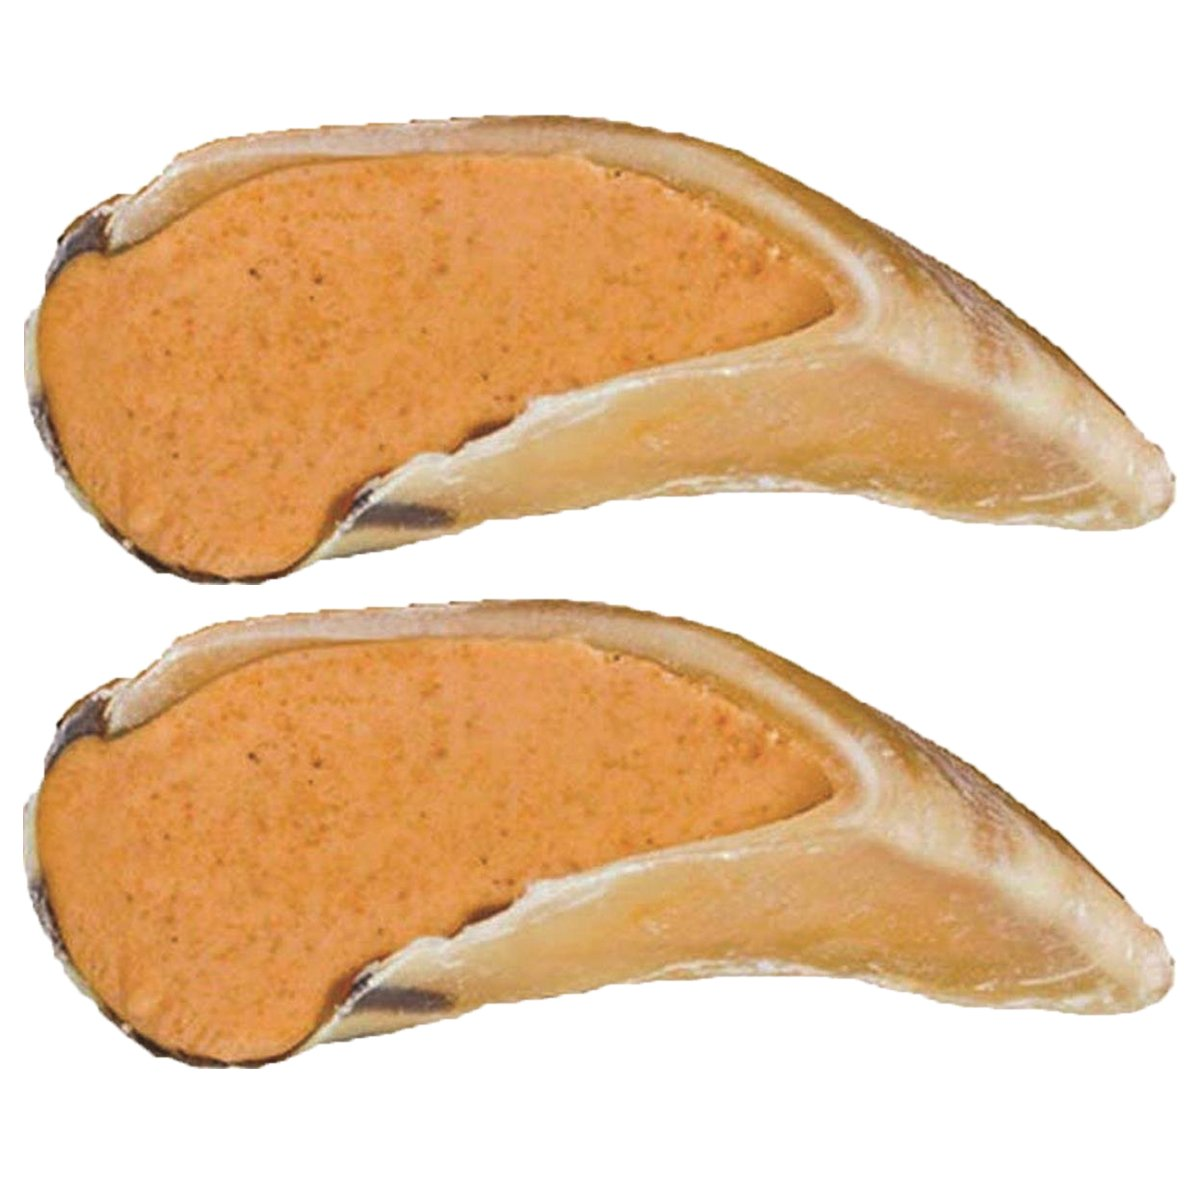 Redbarn Peanut Butter Filled Cow Hooves 1.8 oz. (2-Pack) by Redbarn Pet Products